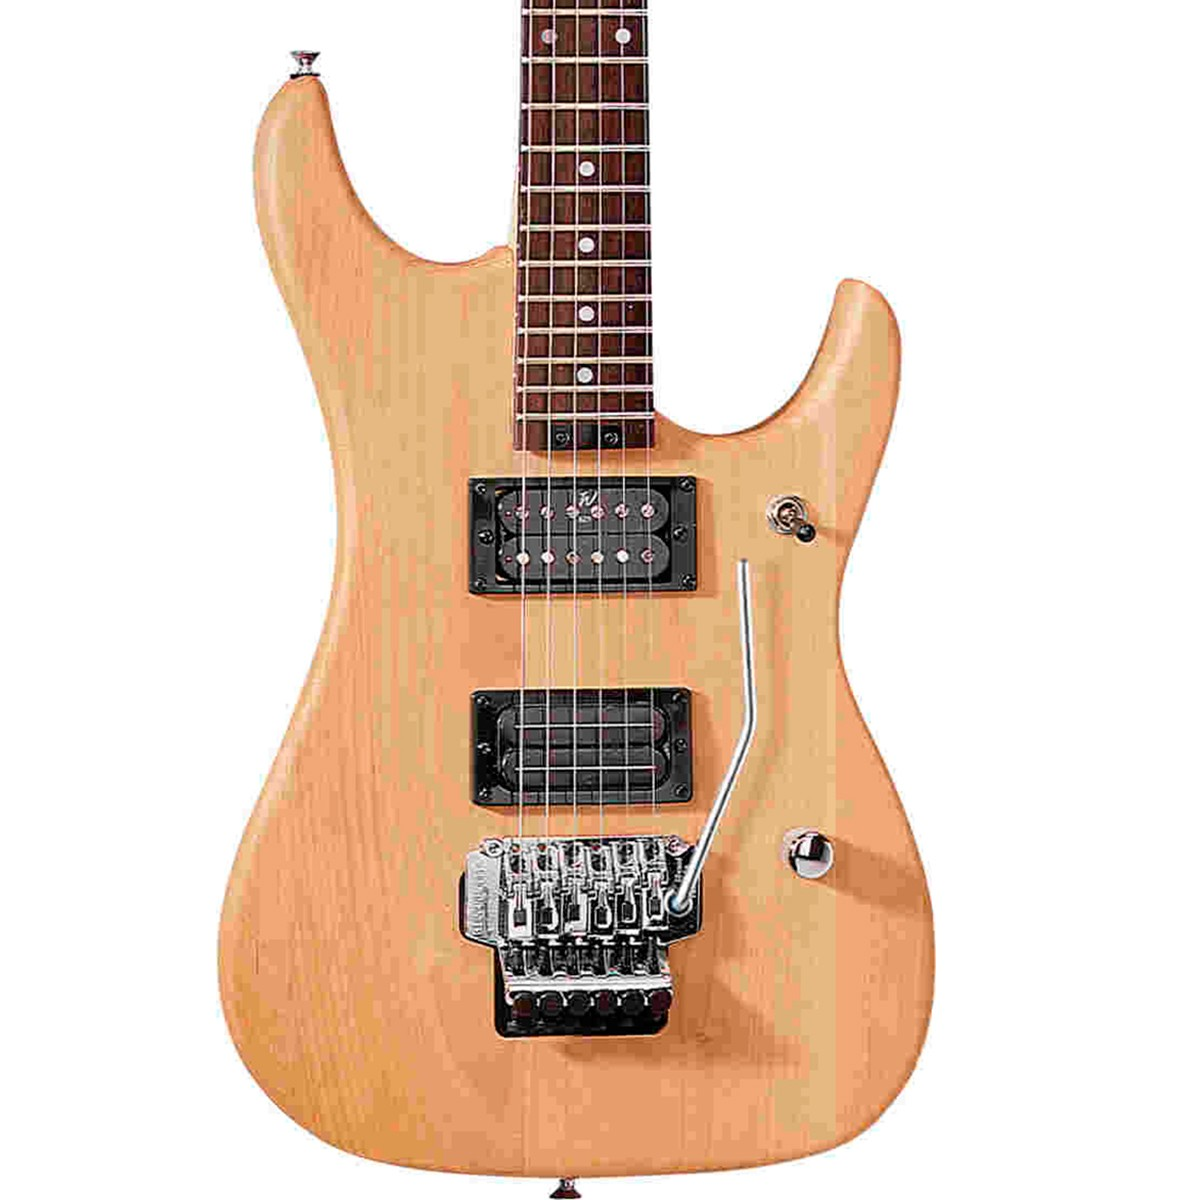 Guitarra Washburn N2 Nuno Bettencourt Signature Natural com Capa